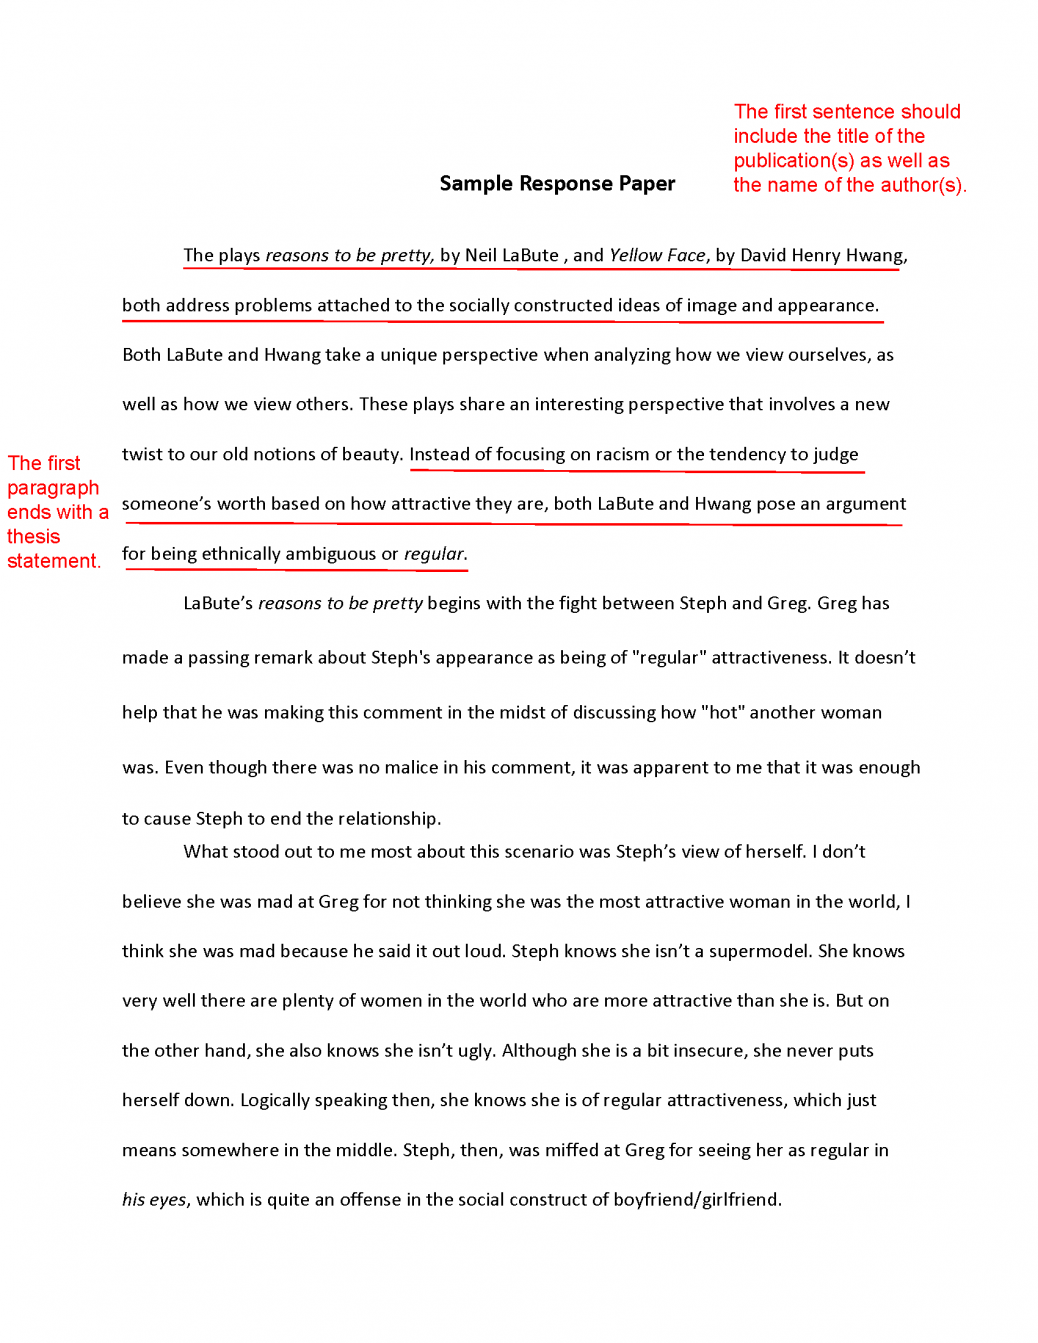 012 Examples Of Research Paper Introductions Proposal Essay Topics List Response Sociology Template Proposing Solution Responce Stupendous Example Introduction About Bullying Scientific Psychology Full